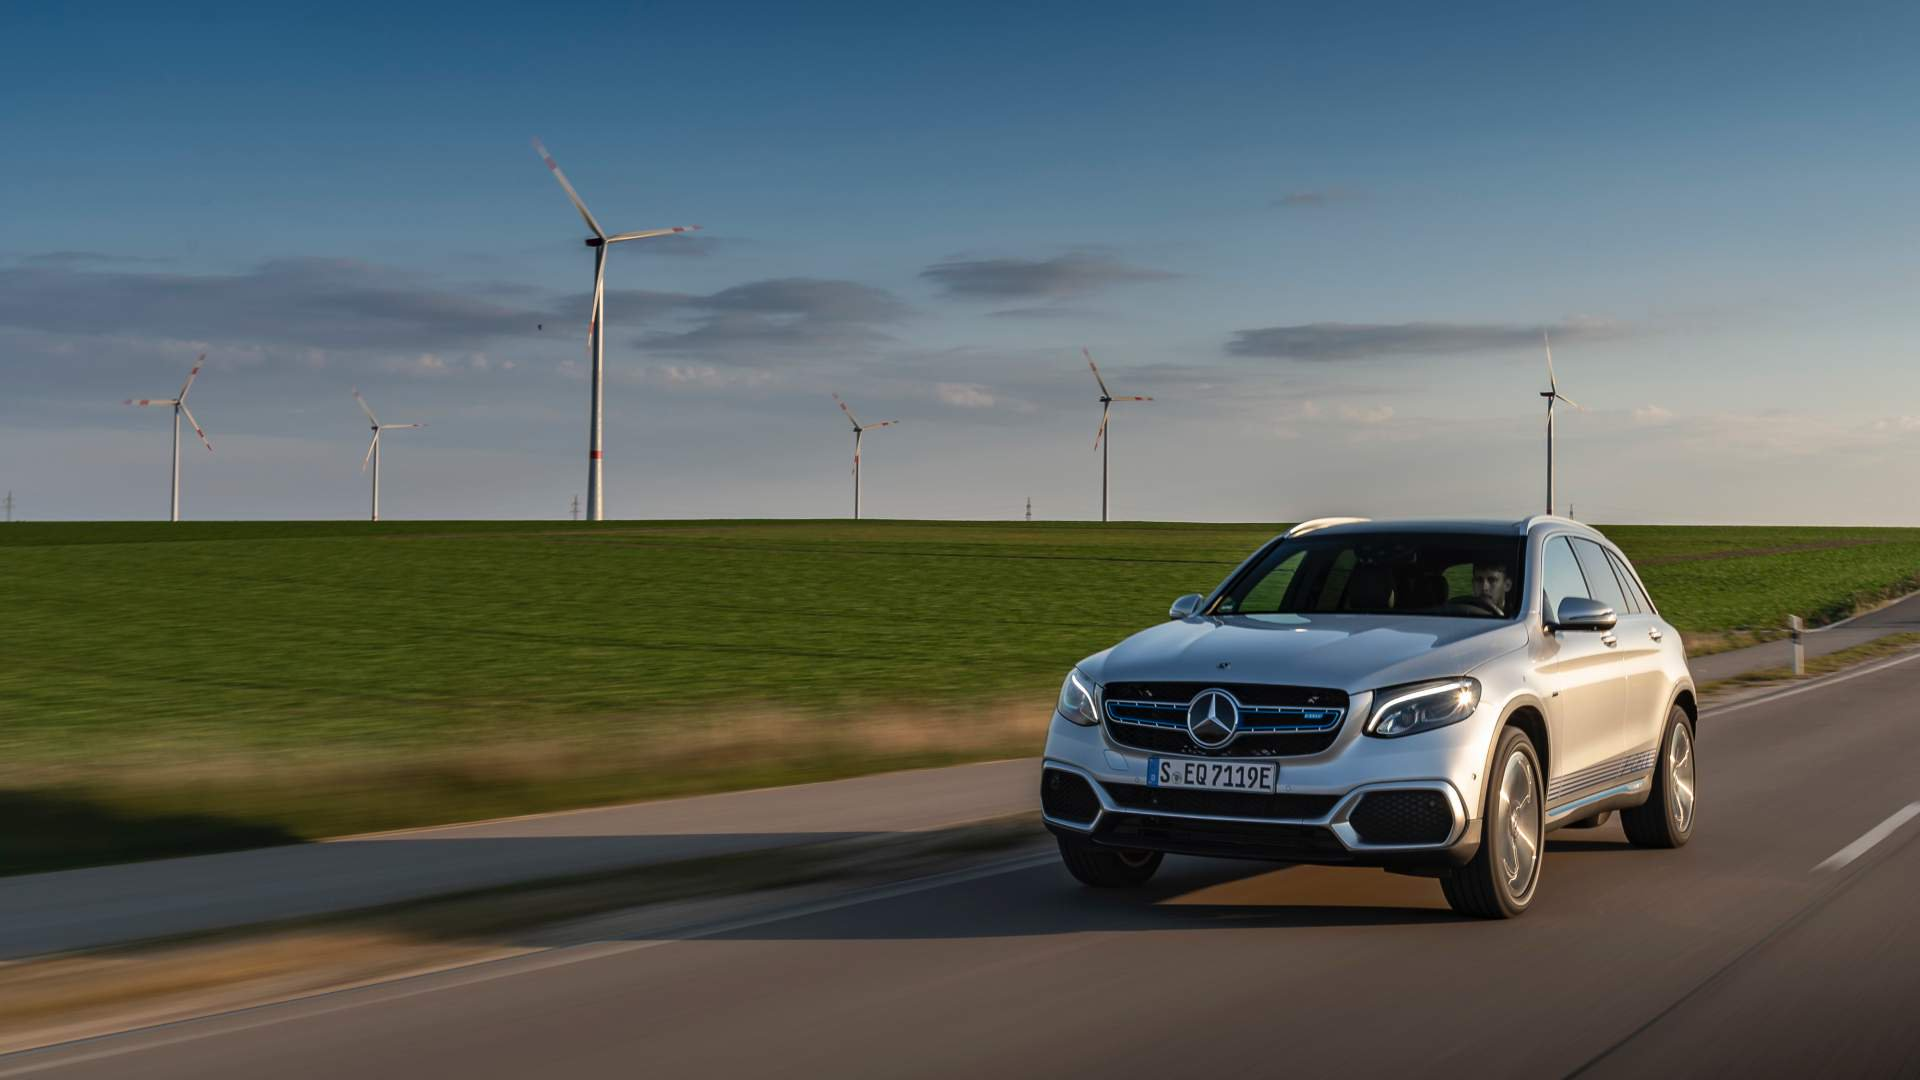 2019_Mercedes_GLC_F-Cell_0051